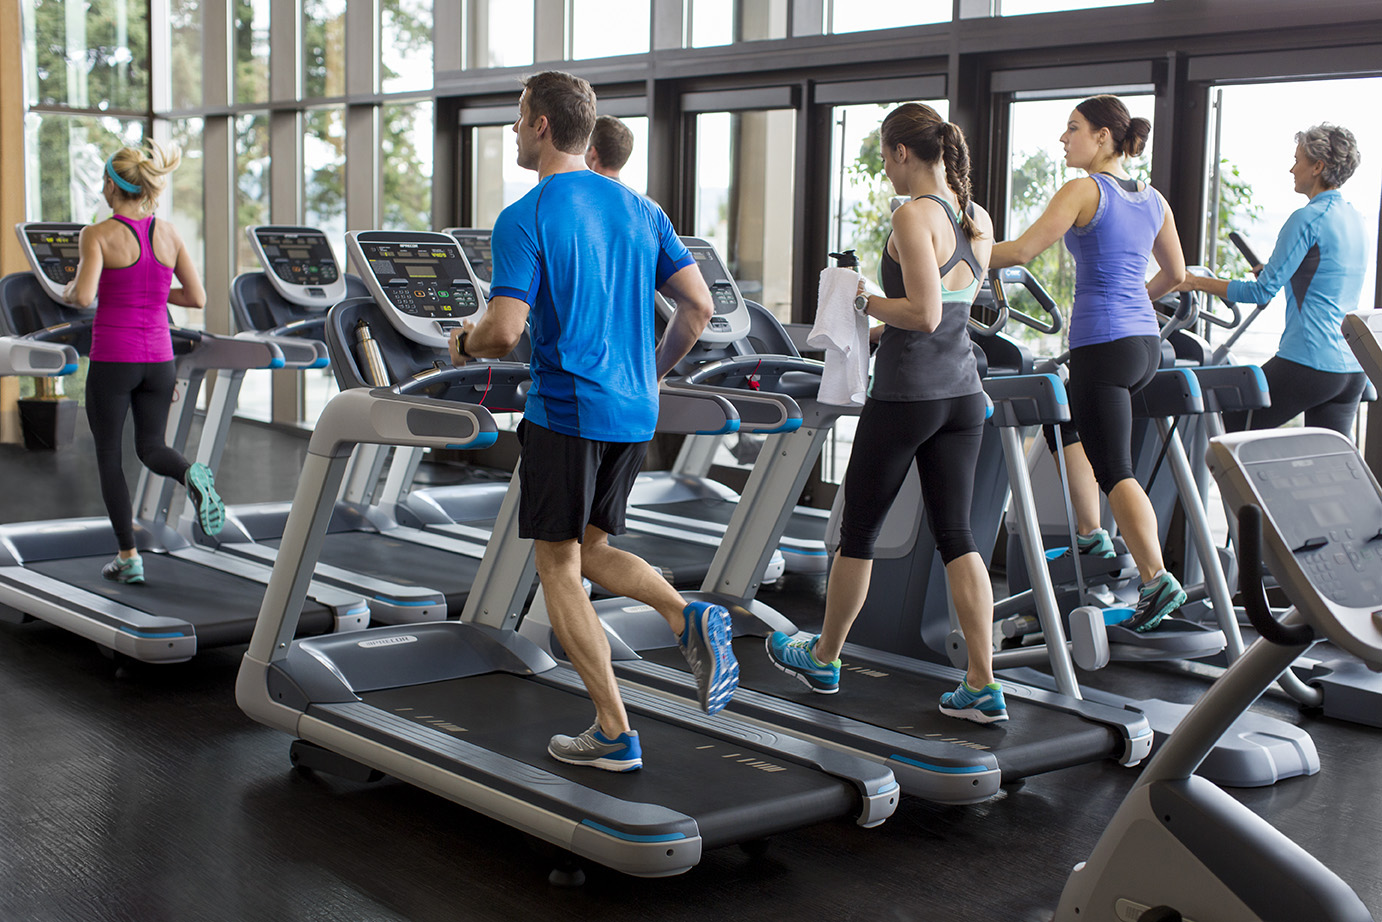 How to choose Best Gym Equipment For Effective Exercise